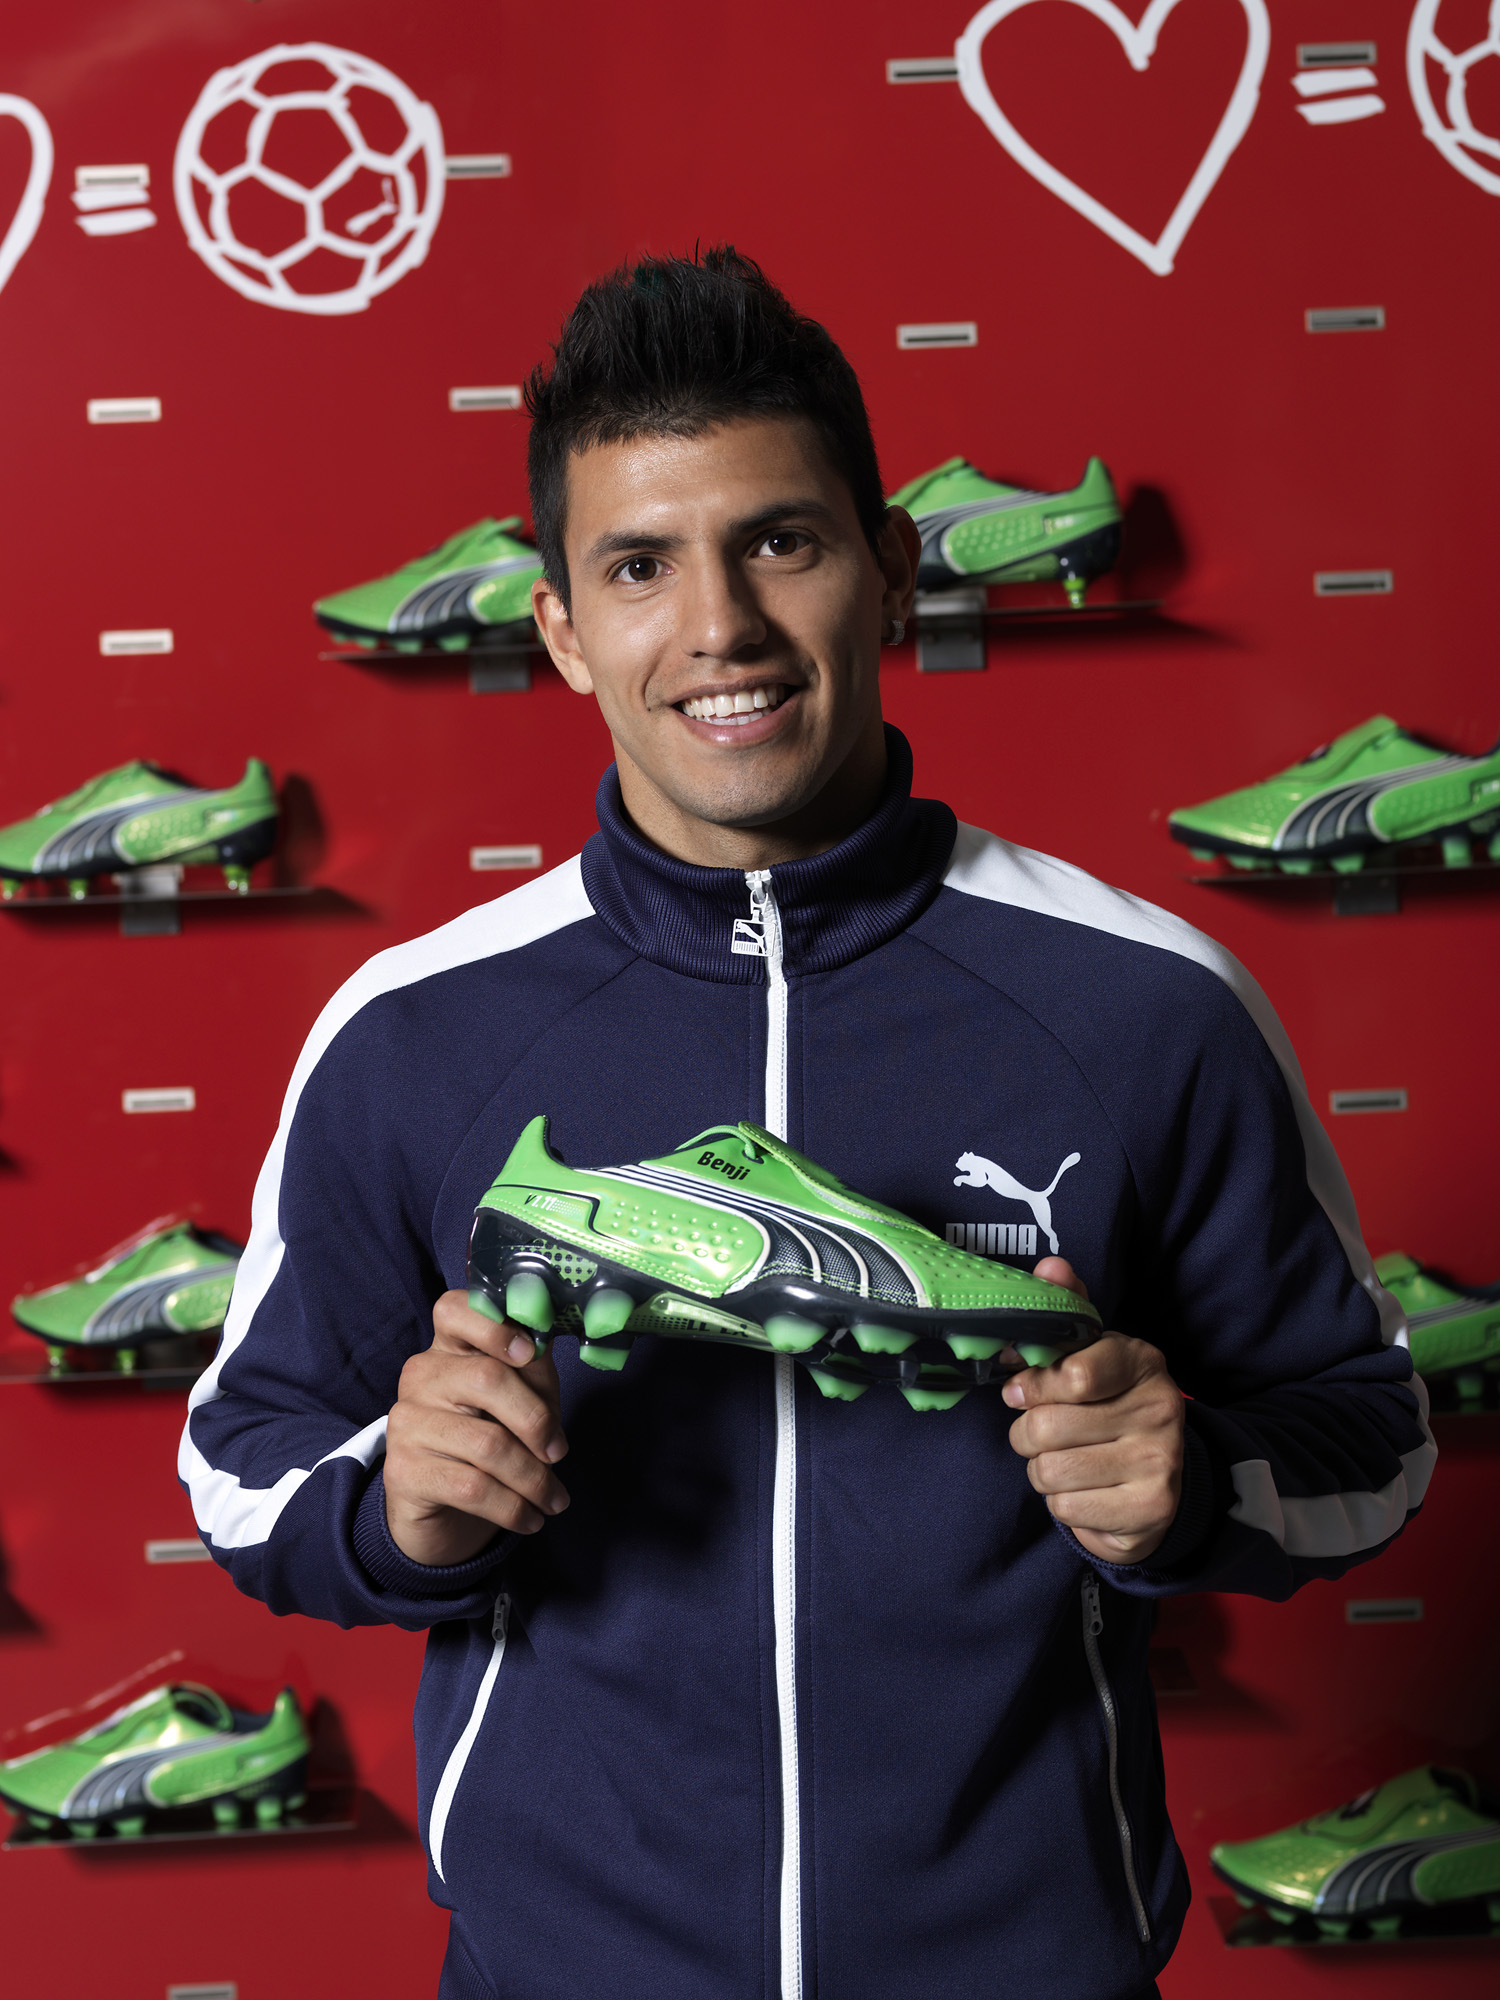 2524b2666 QUALITY PRODUCTS FROM PARIKH GROUP. aguero boots puma